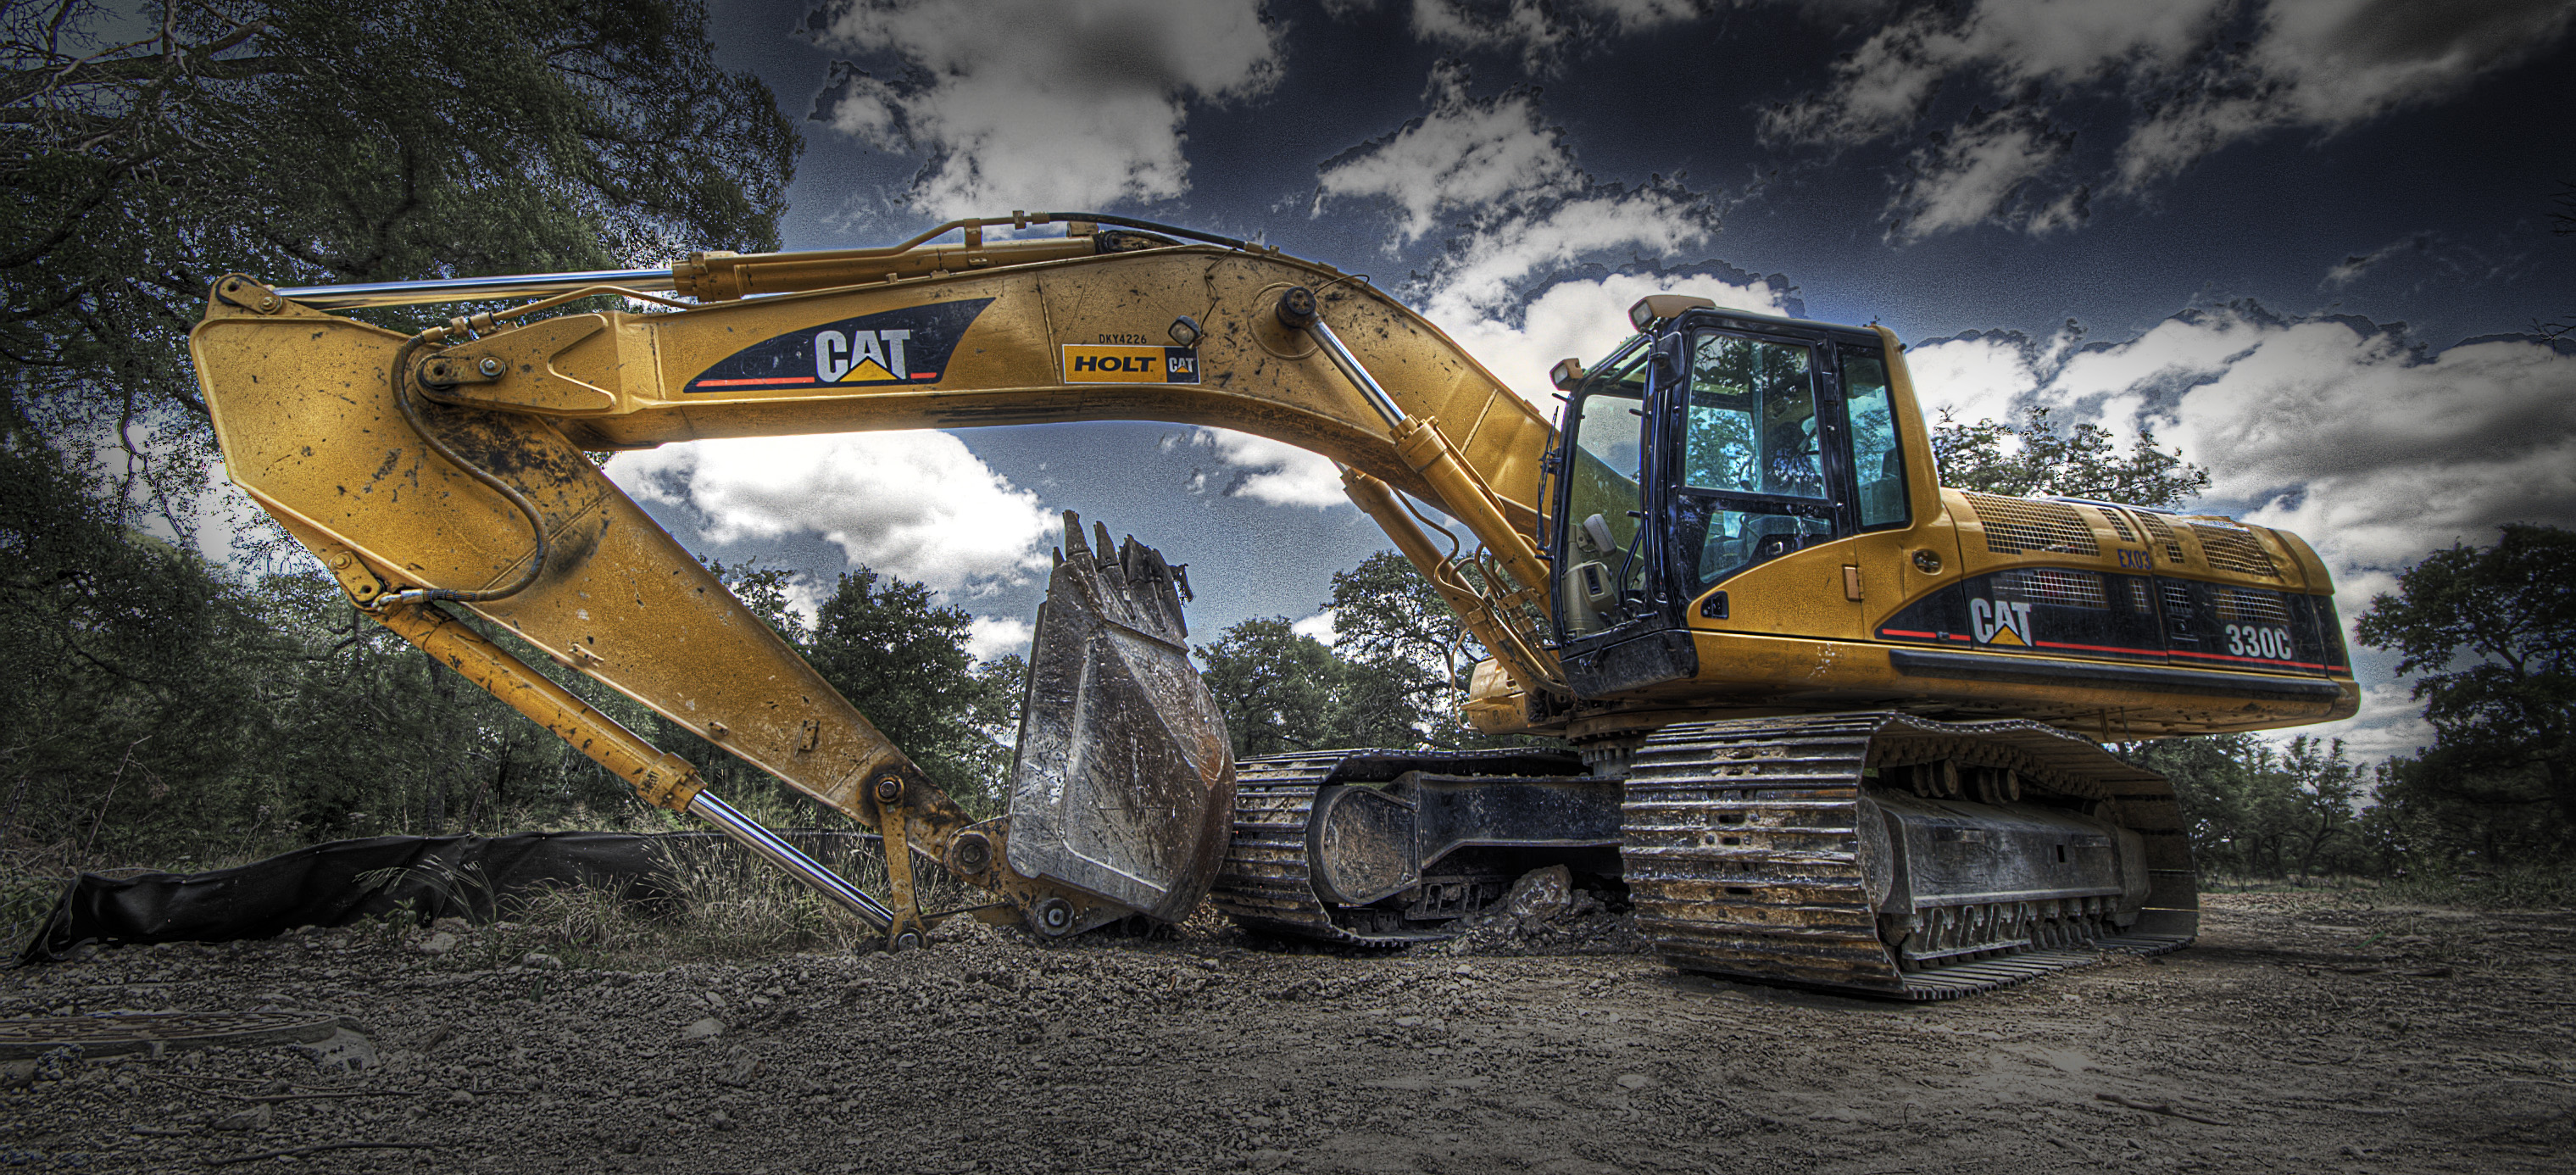 Caterpillar Machines Wallpaper 3039x1386